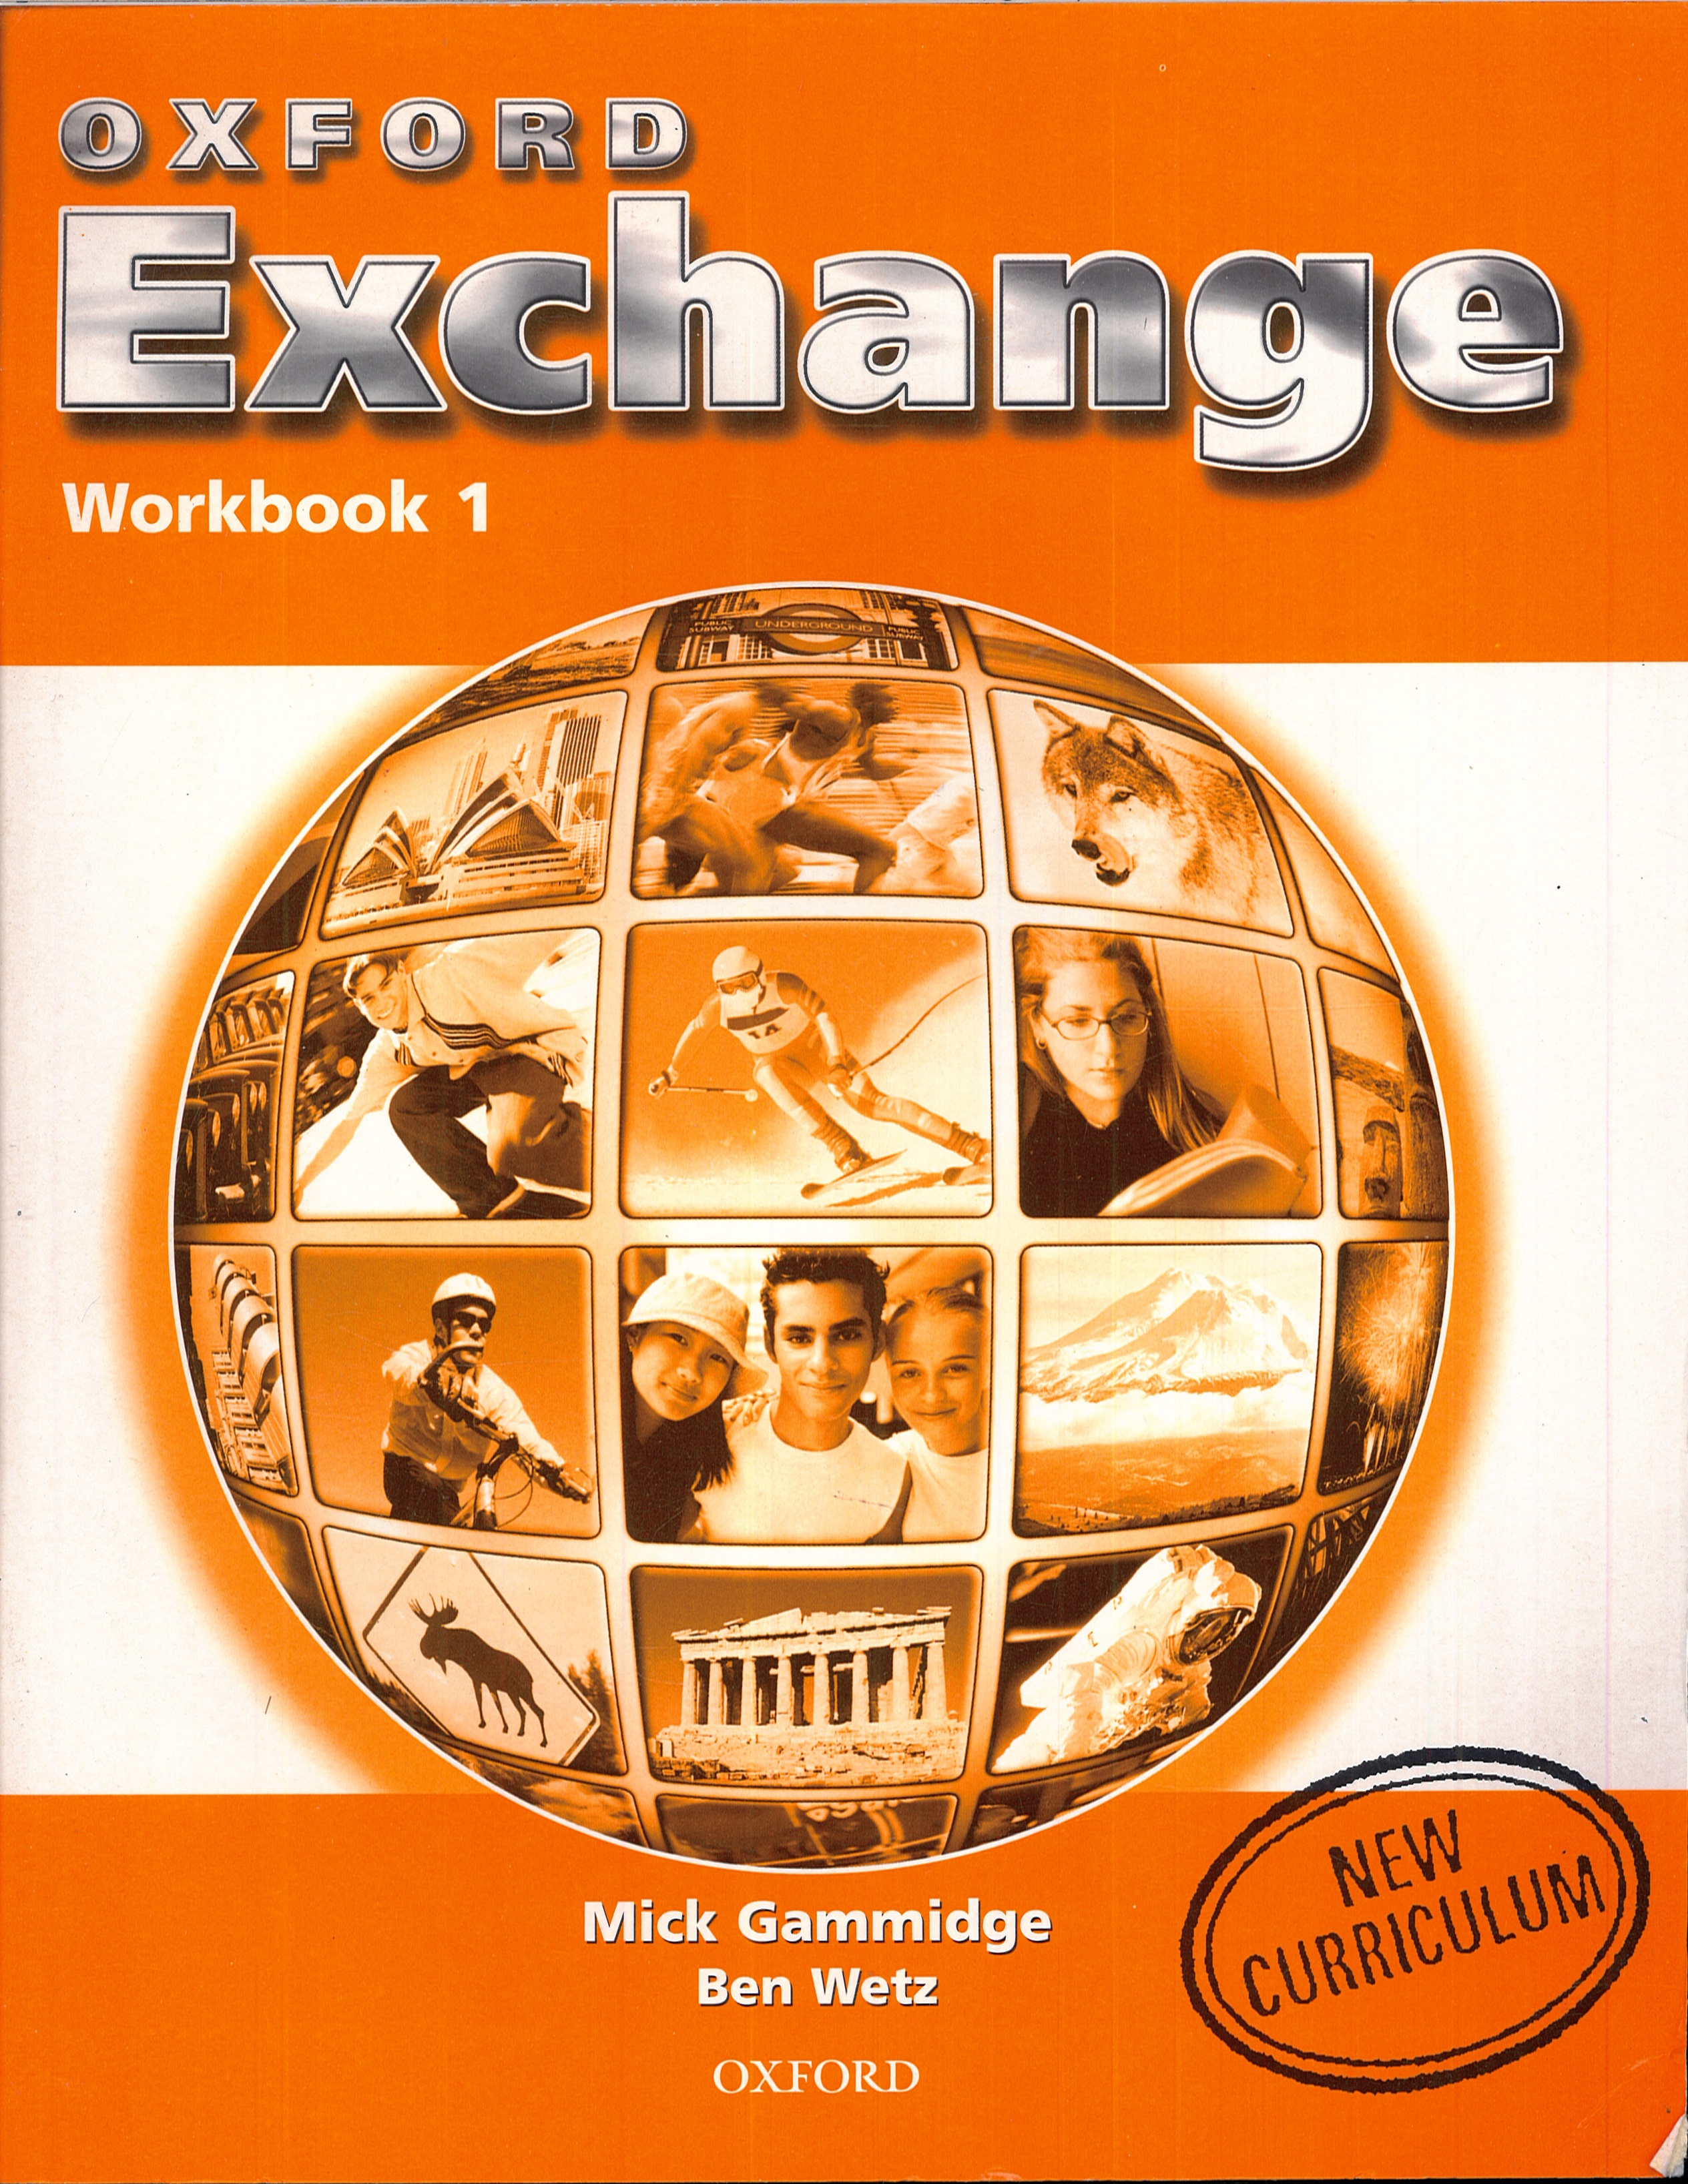 OXFORD EXCHANGE. Workbook 1.